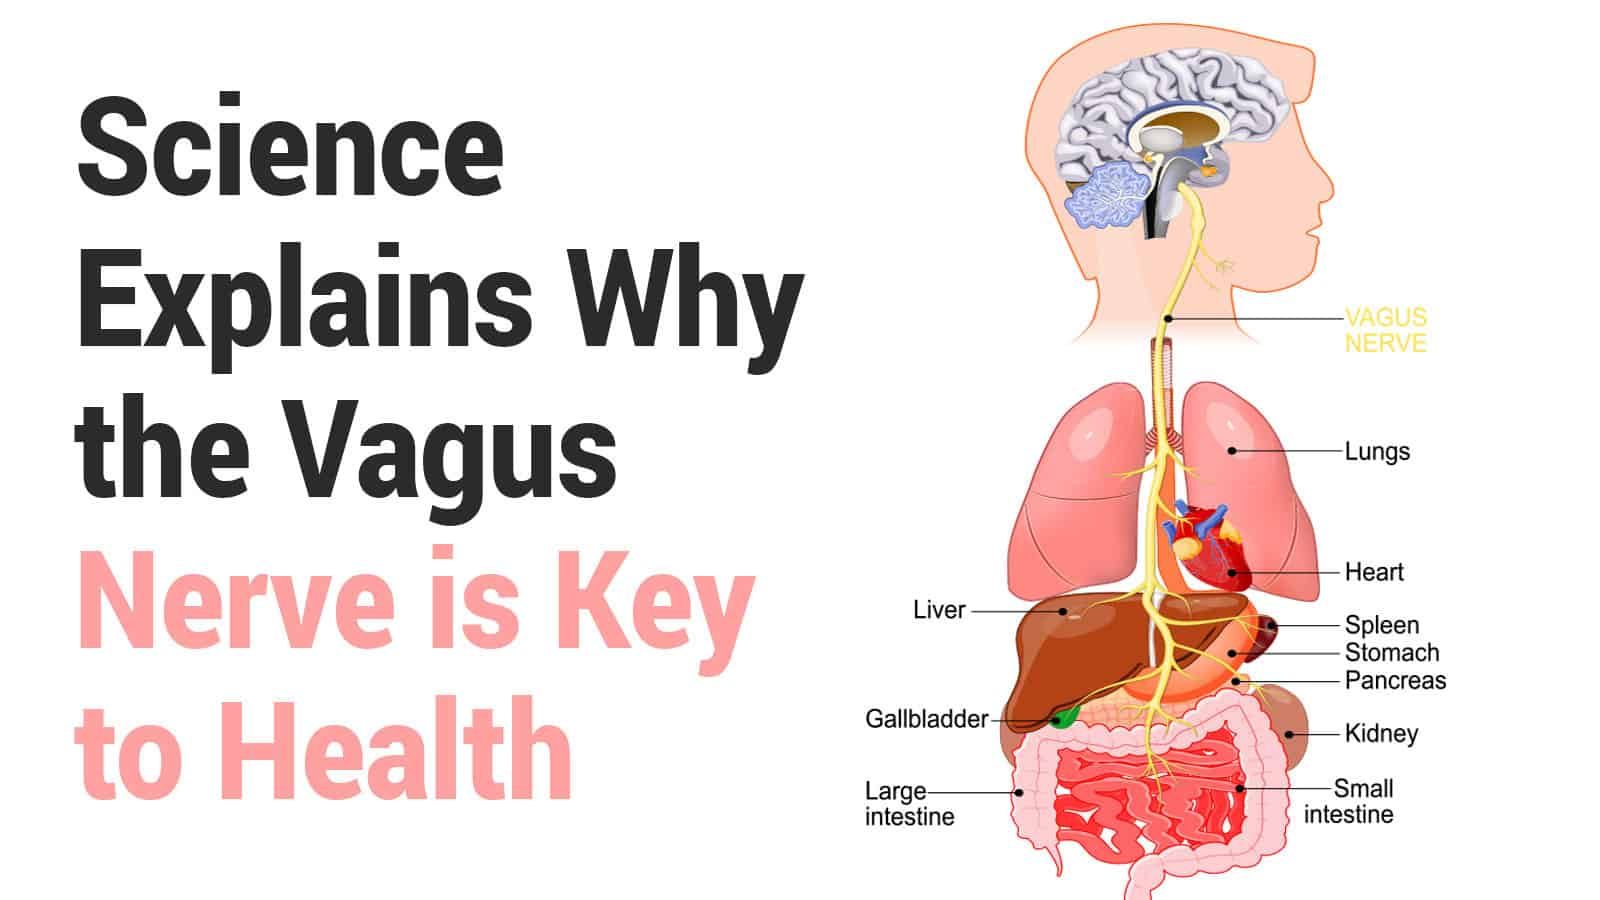 Science Explains Why the Vagus Nerve is Key to Health